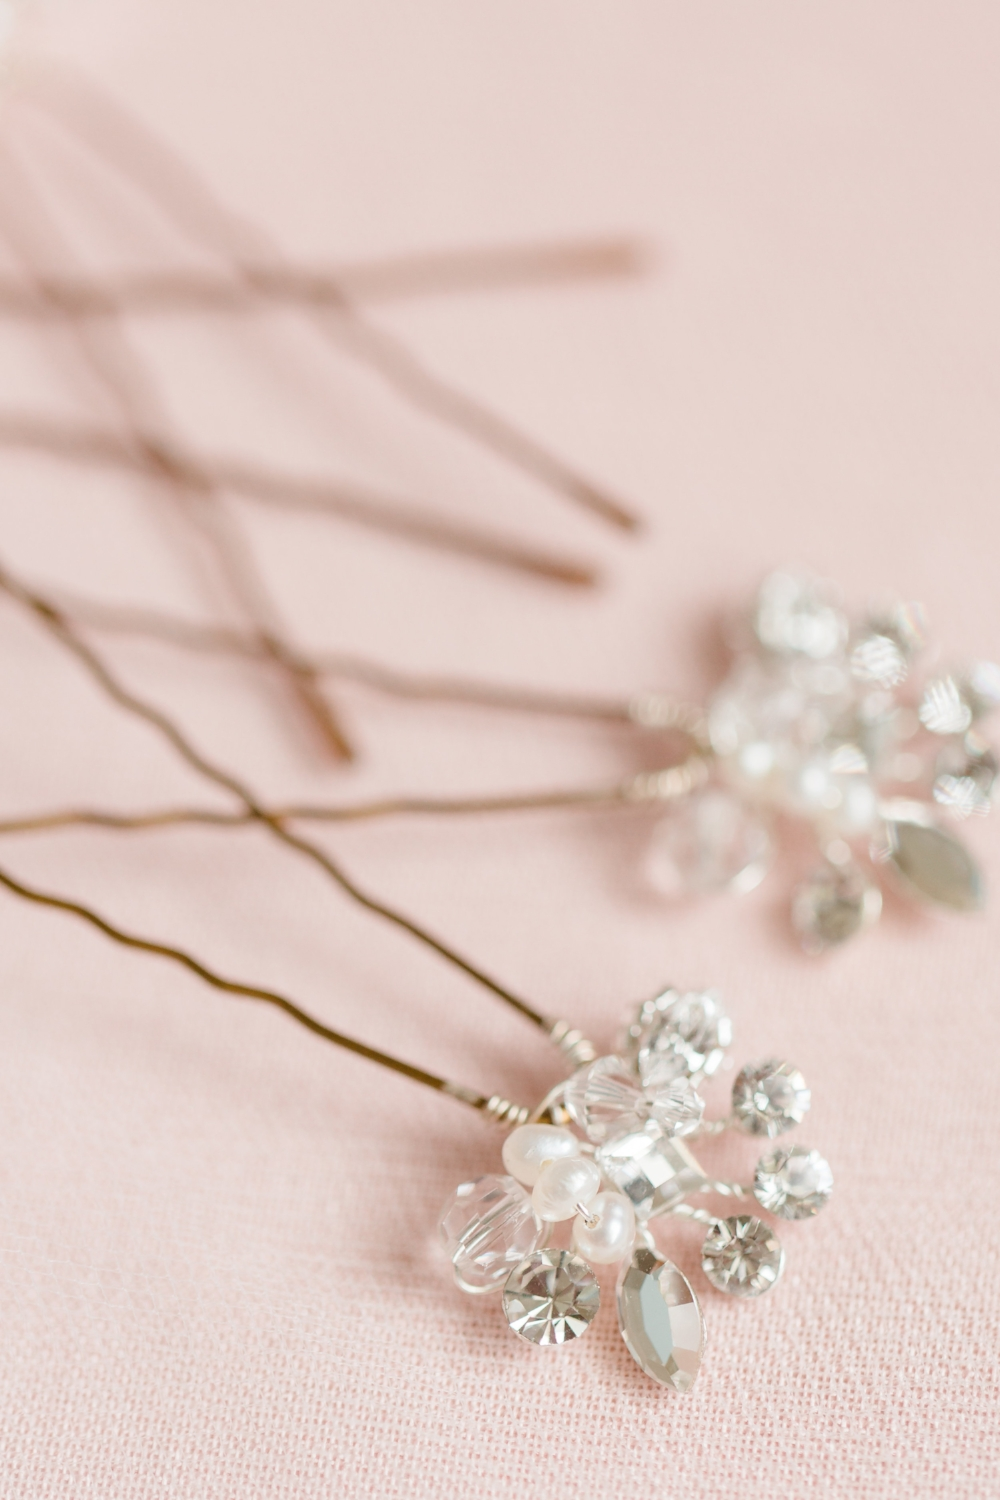 """Freshwater pearl and Swarovski crystal """"Cluster Hair Pins"""" by Headpiece.com."""